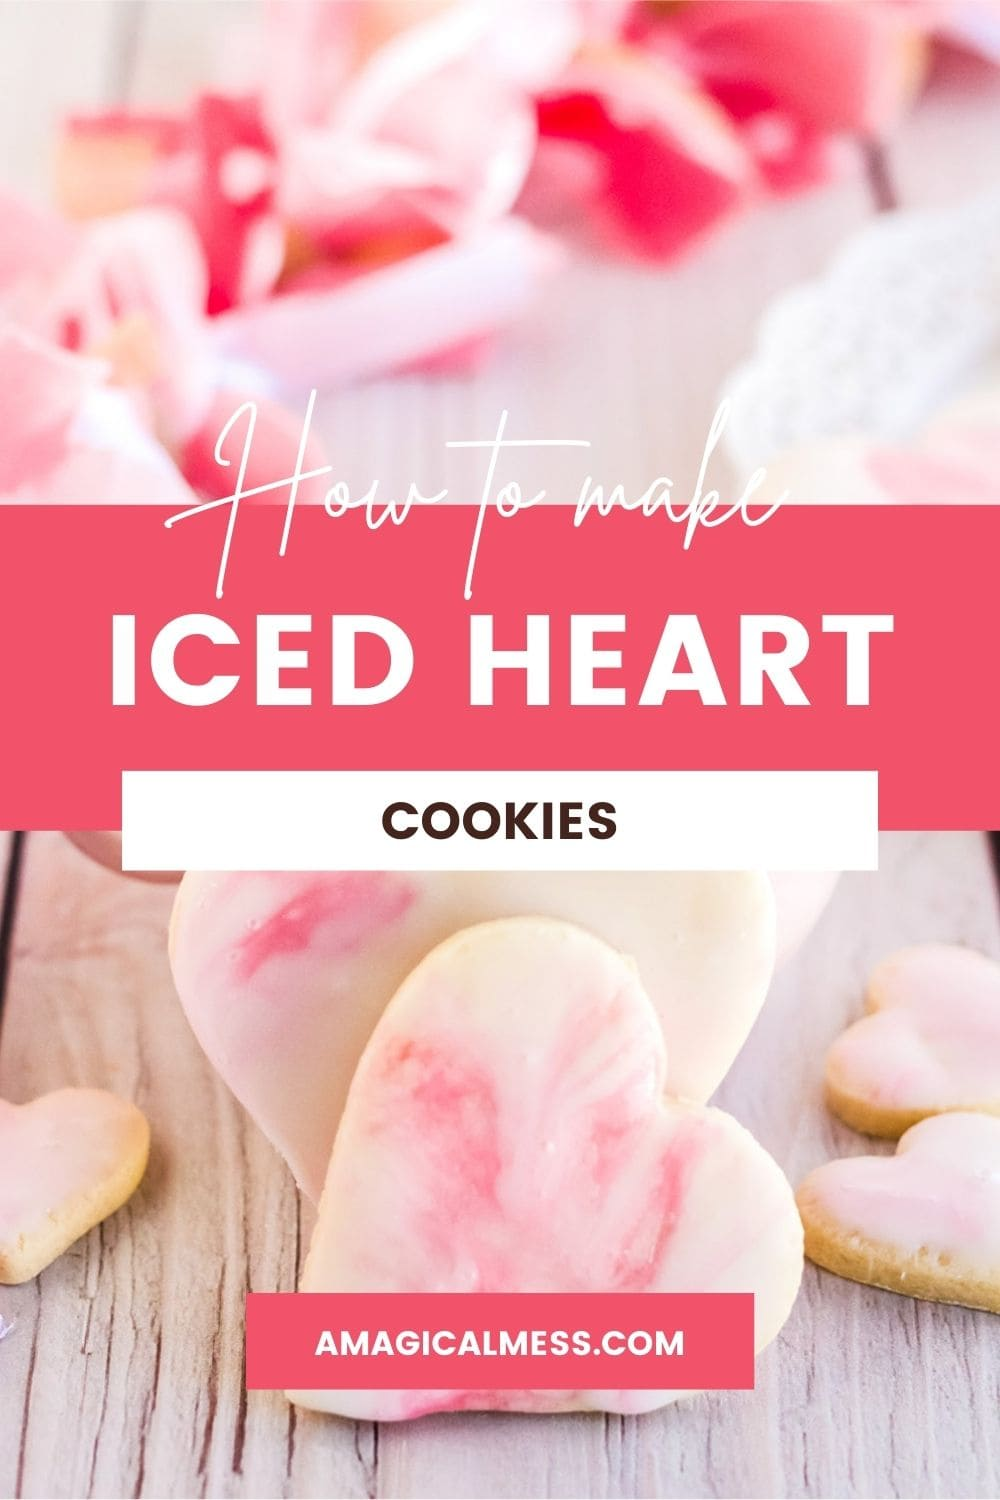 Heart cookies with icing on a table with pink flower petals.